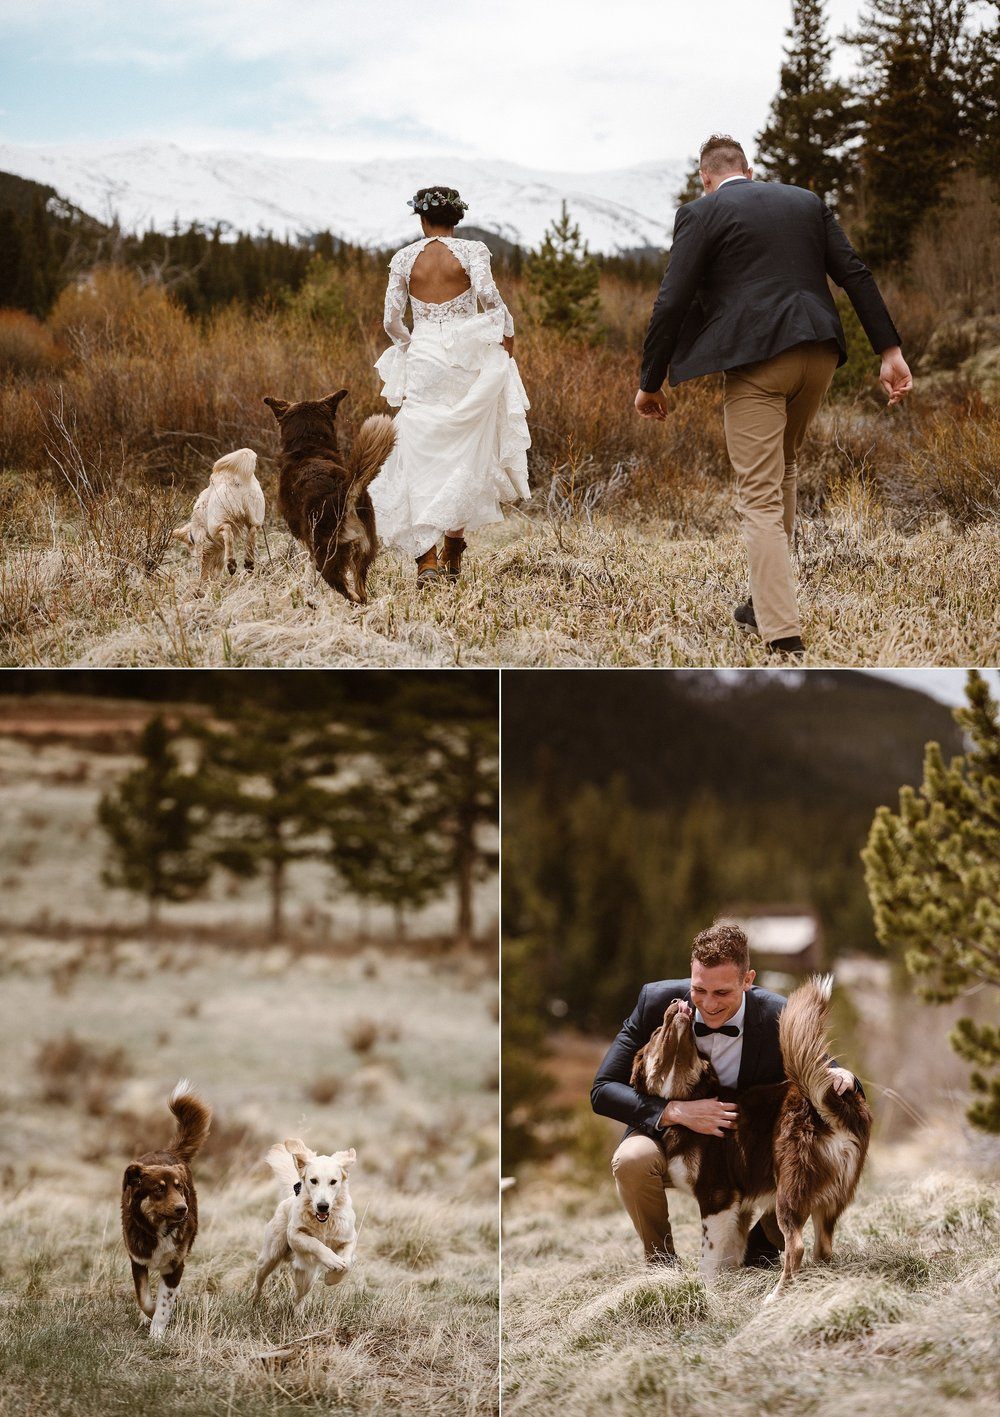 Wandering with their pups into the grassy fields behind their cabin as a perfect adventurous book end to their non-traditional hiking elopement through the mountains near Breckinridge, Colorado. Their intimate wedding photographed by Maddie Mae Photography.